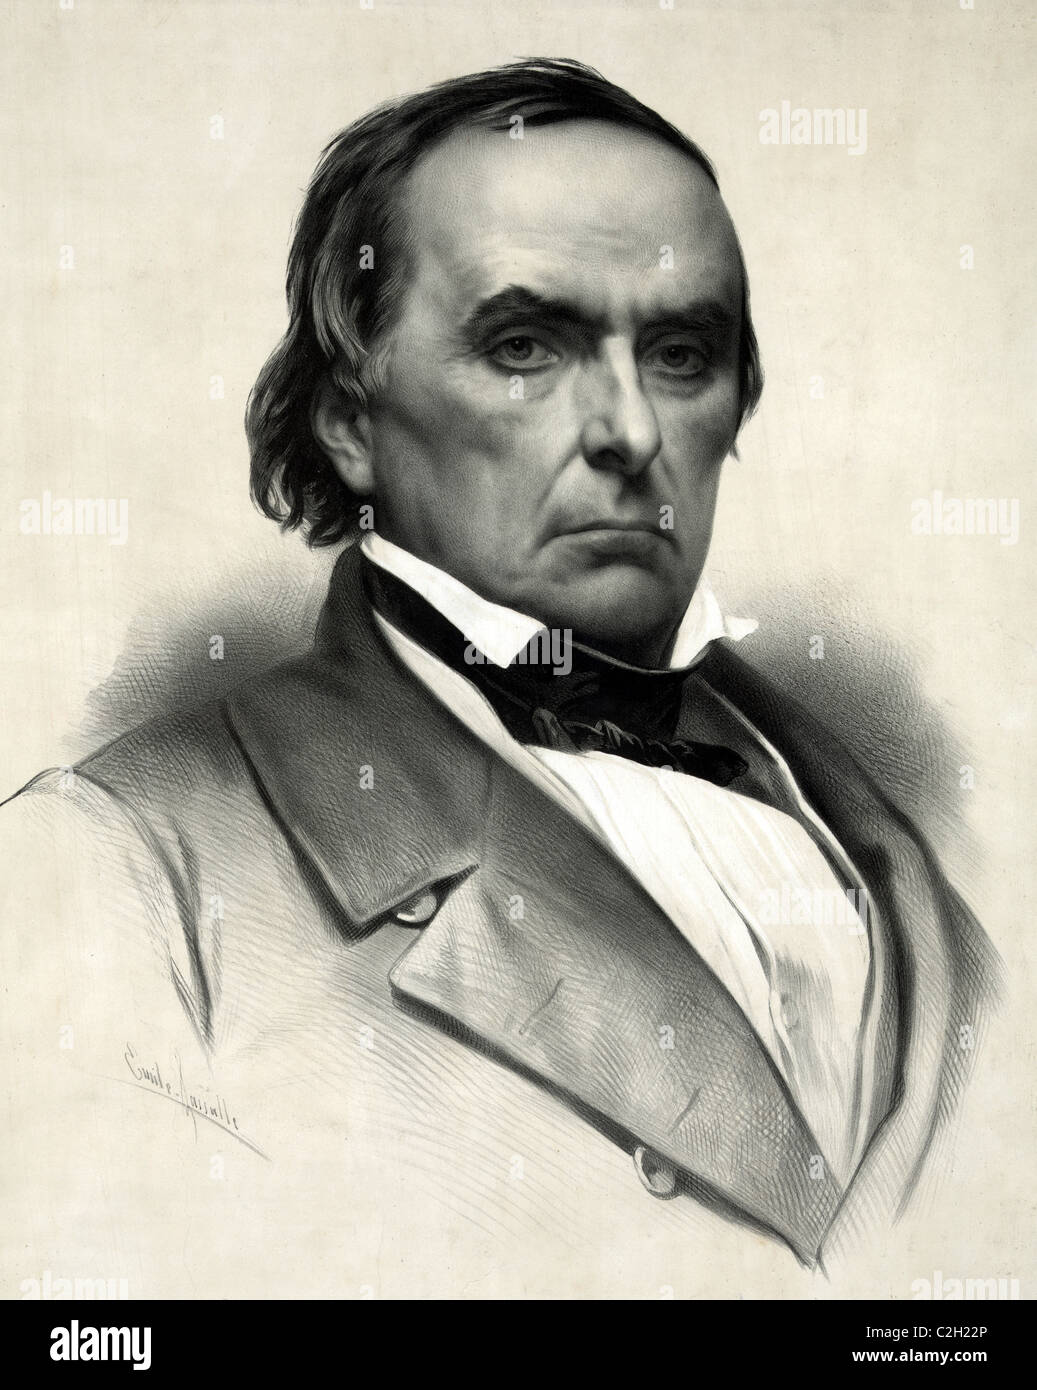 Daniel Webster leading American statesman and senator during the nation's Antebellum Period. - Stock Image